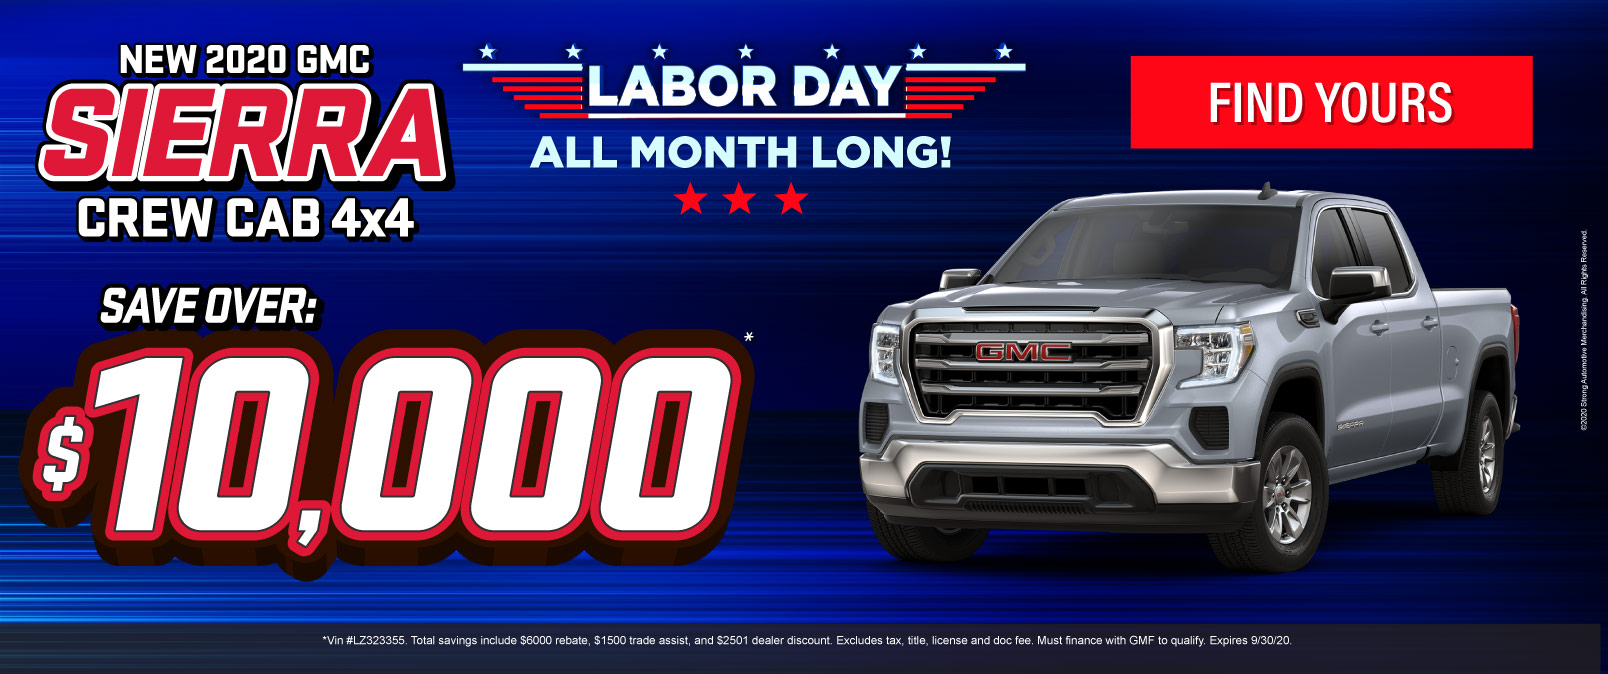 New 2020 GMC Sierra - Save over $10,000